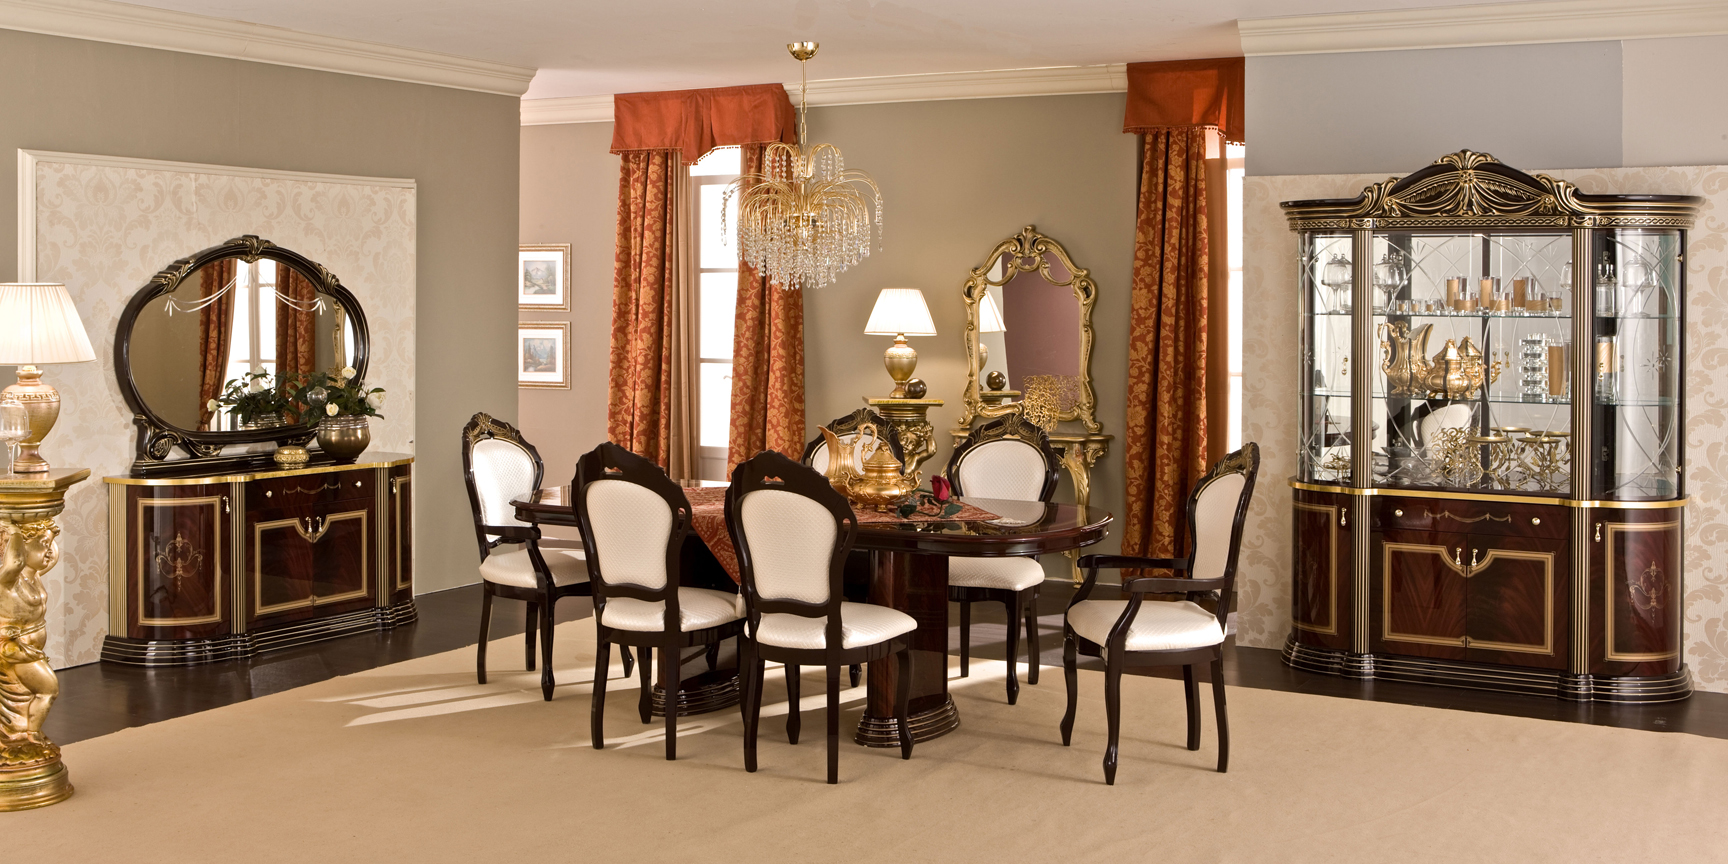 Luxor Day Mahogany 5pc Dining set & Luxor Day Mahogany 5pc Dining set - $3099.00 : SA Furniture San ...